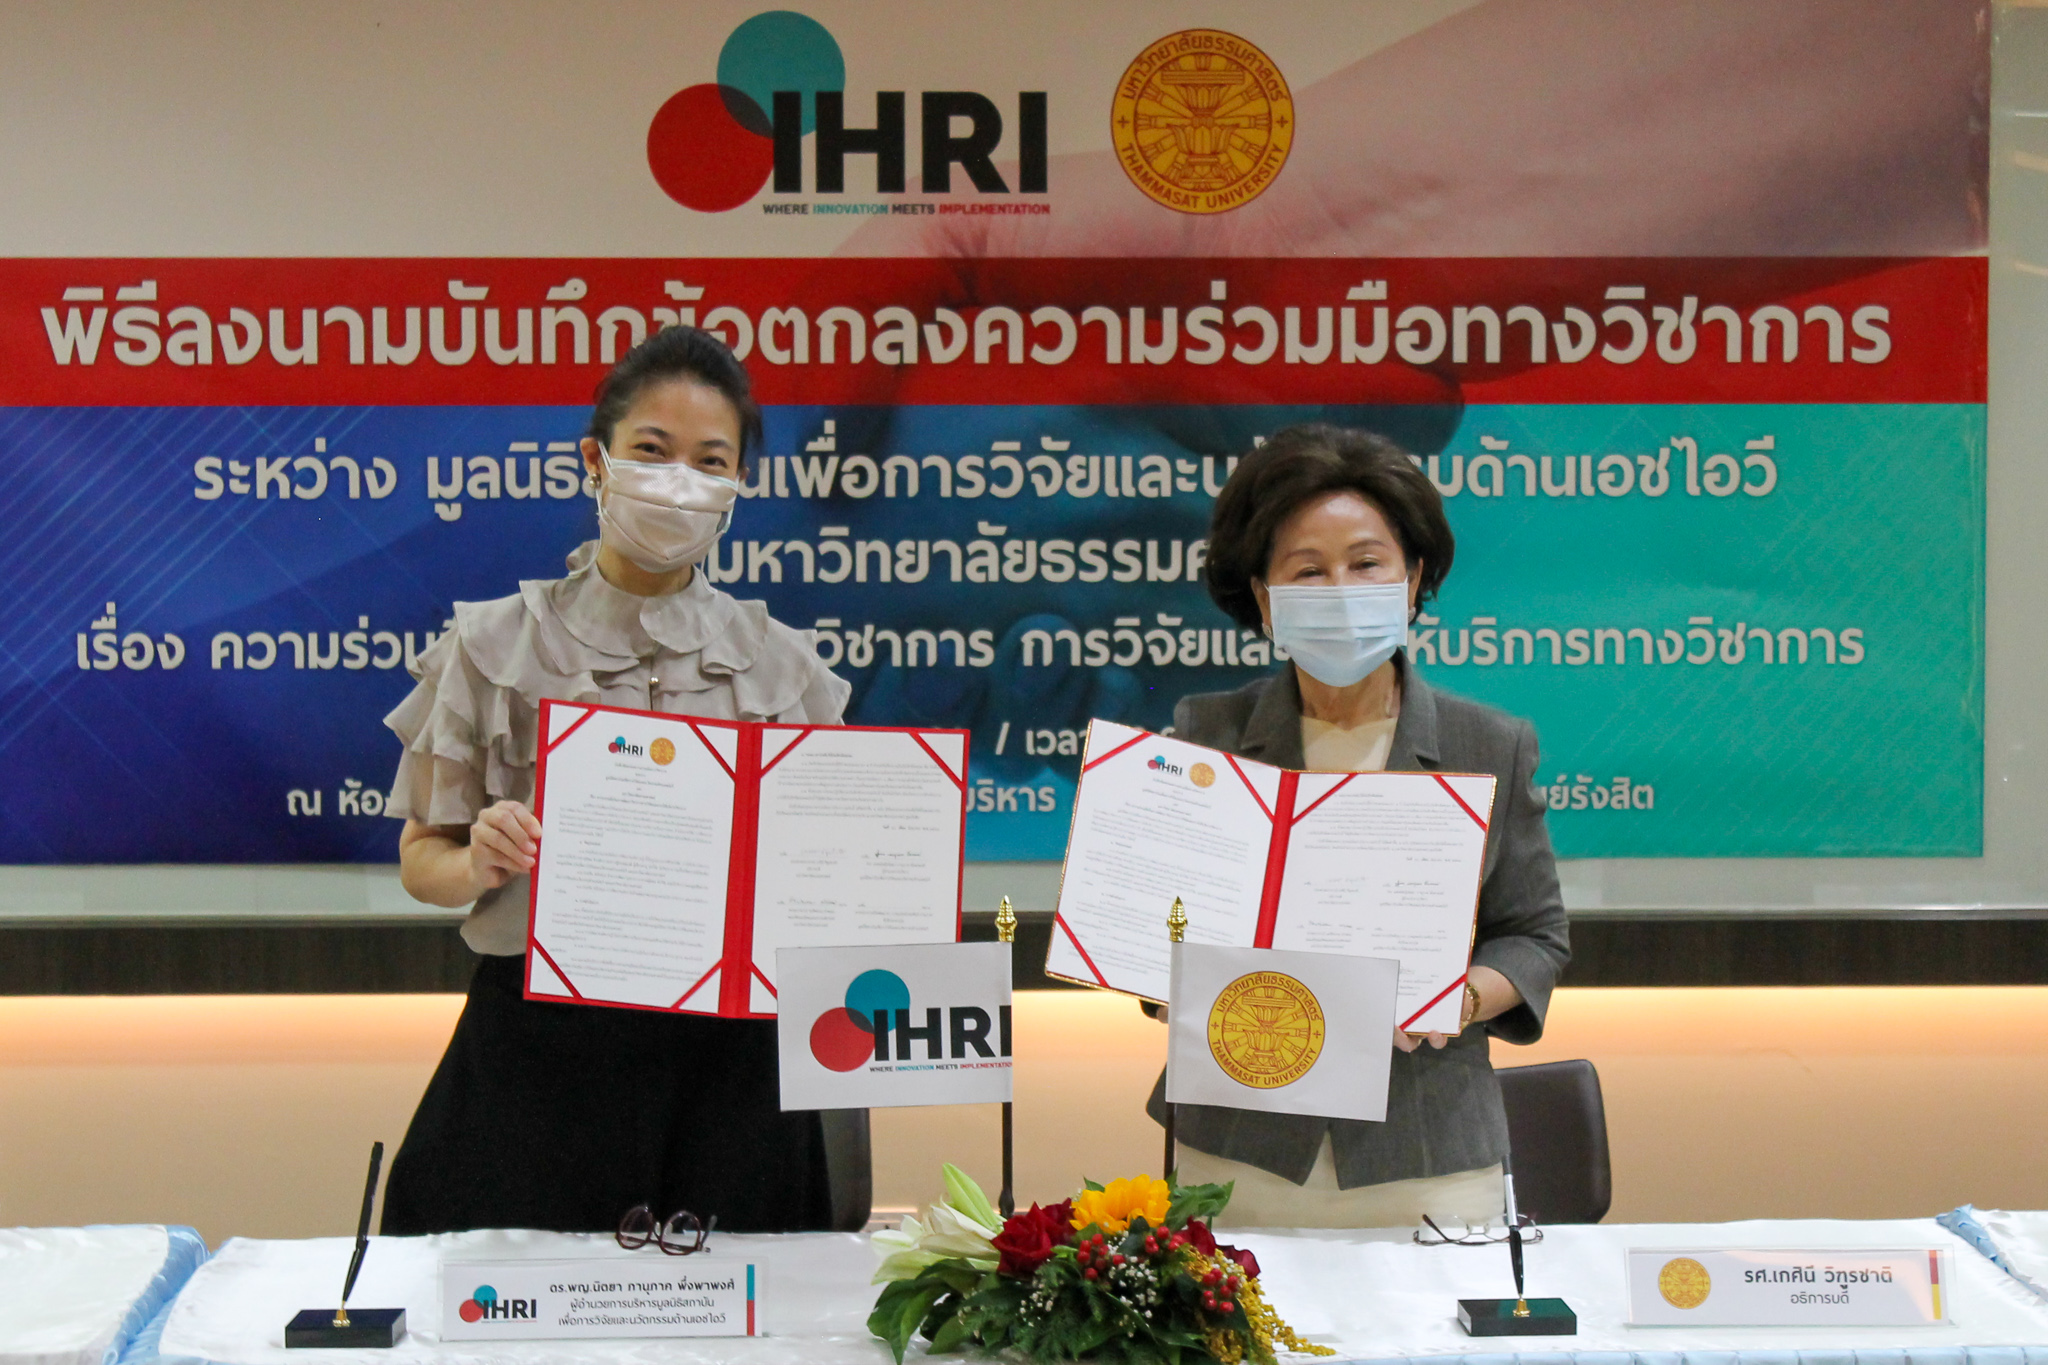 IHRI and Thammasat joining hands to strengthen academic and research partnership